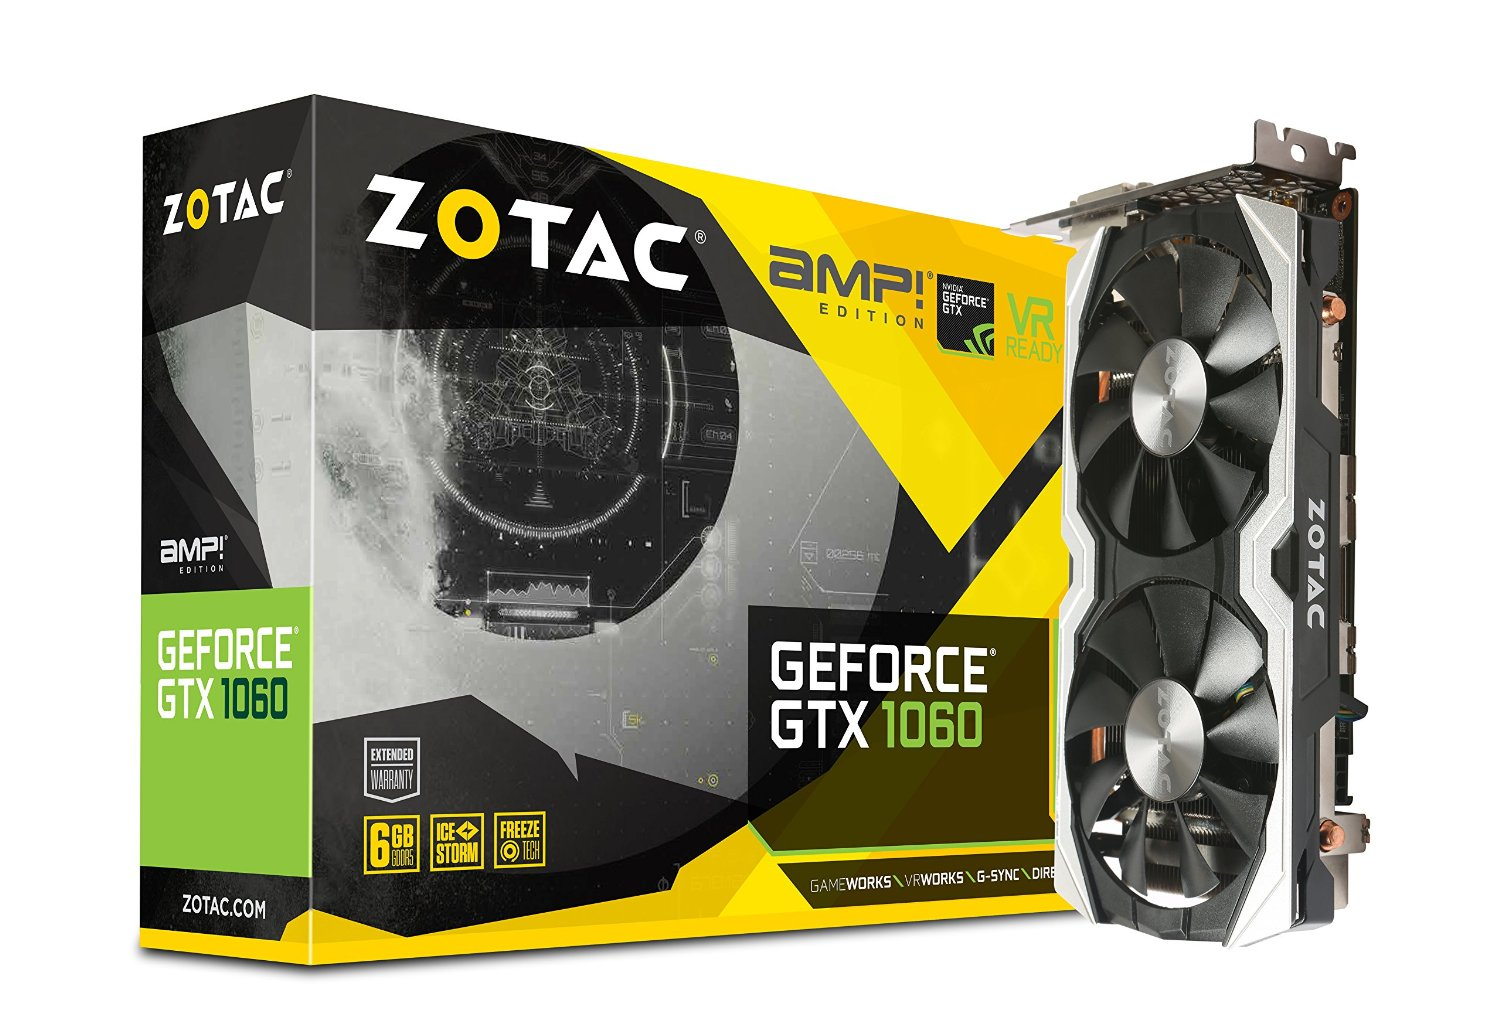 ZOTAC GeForce GTX 1060 AMP, 6GB GDDR5 (192 Bit), HDMI, DVI, 3xDP video karte